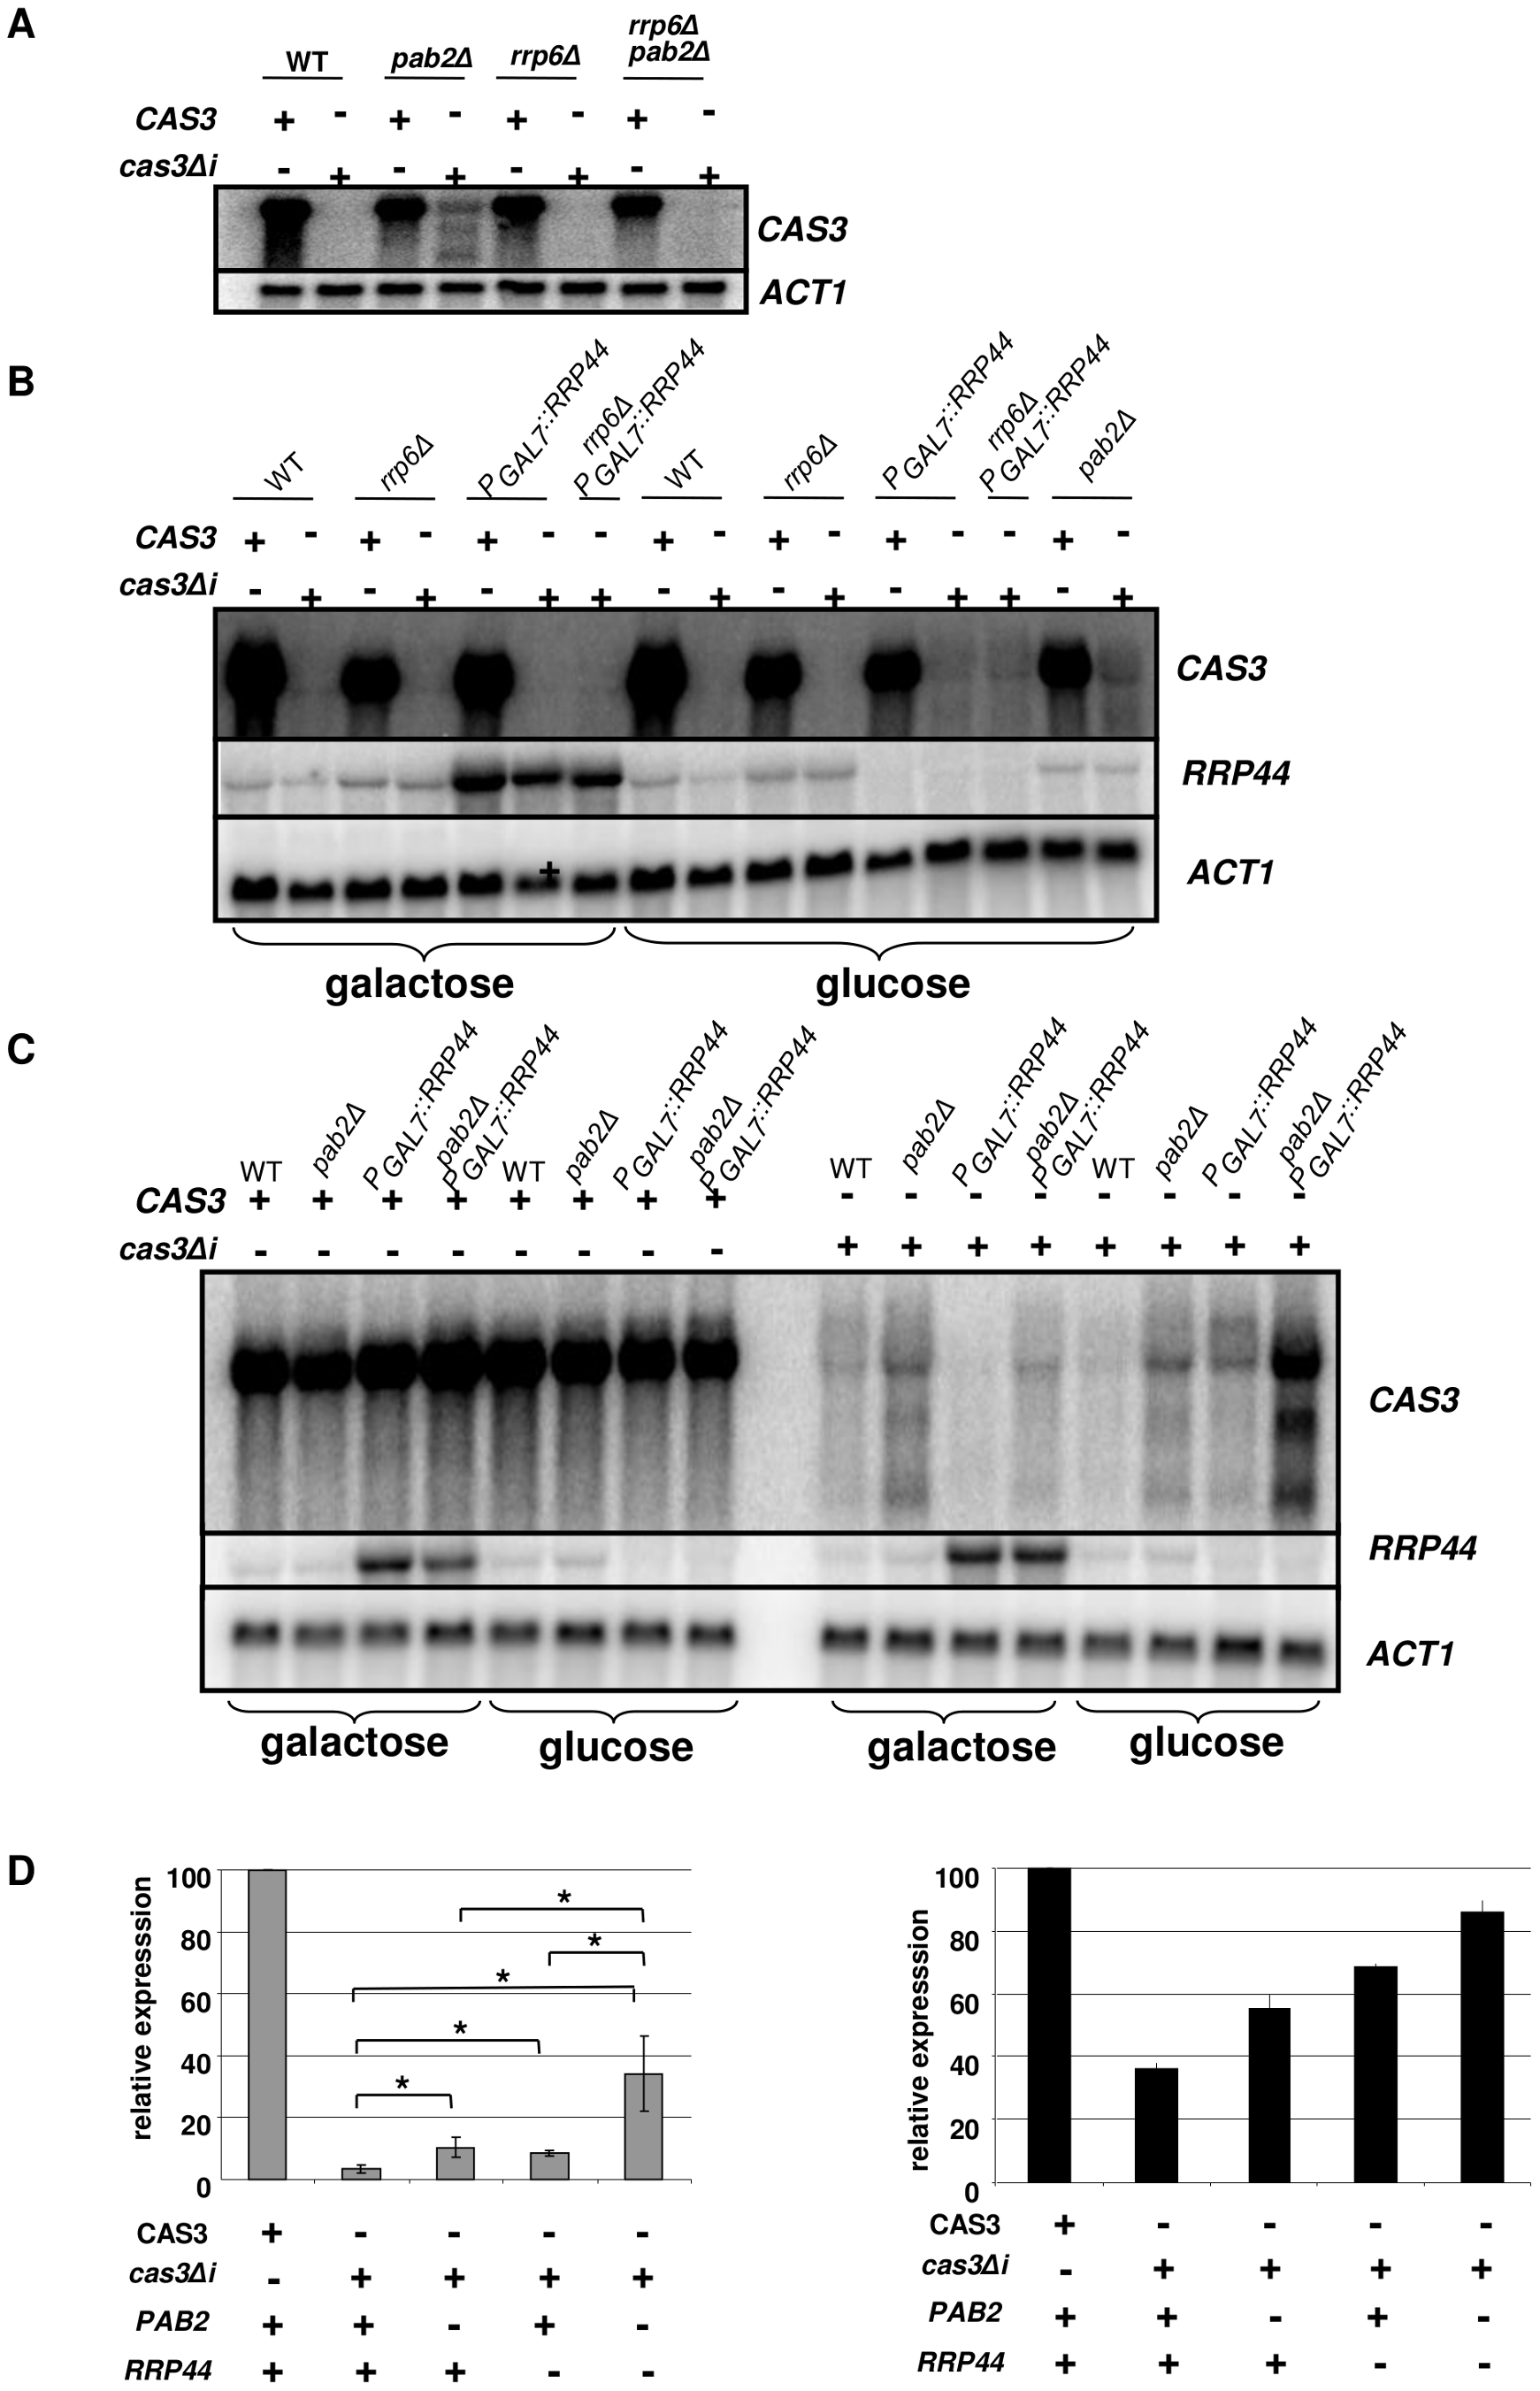 Regulation of <i>cas3Δi</i> mRNA accumulation by the exosome.